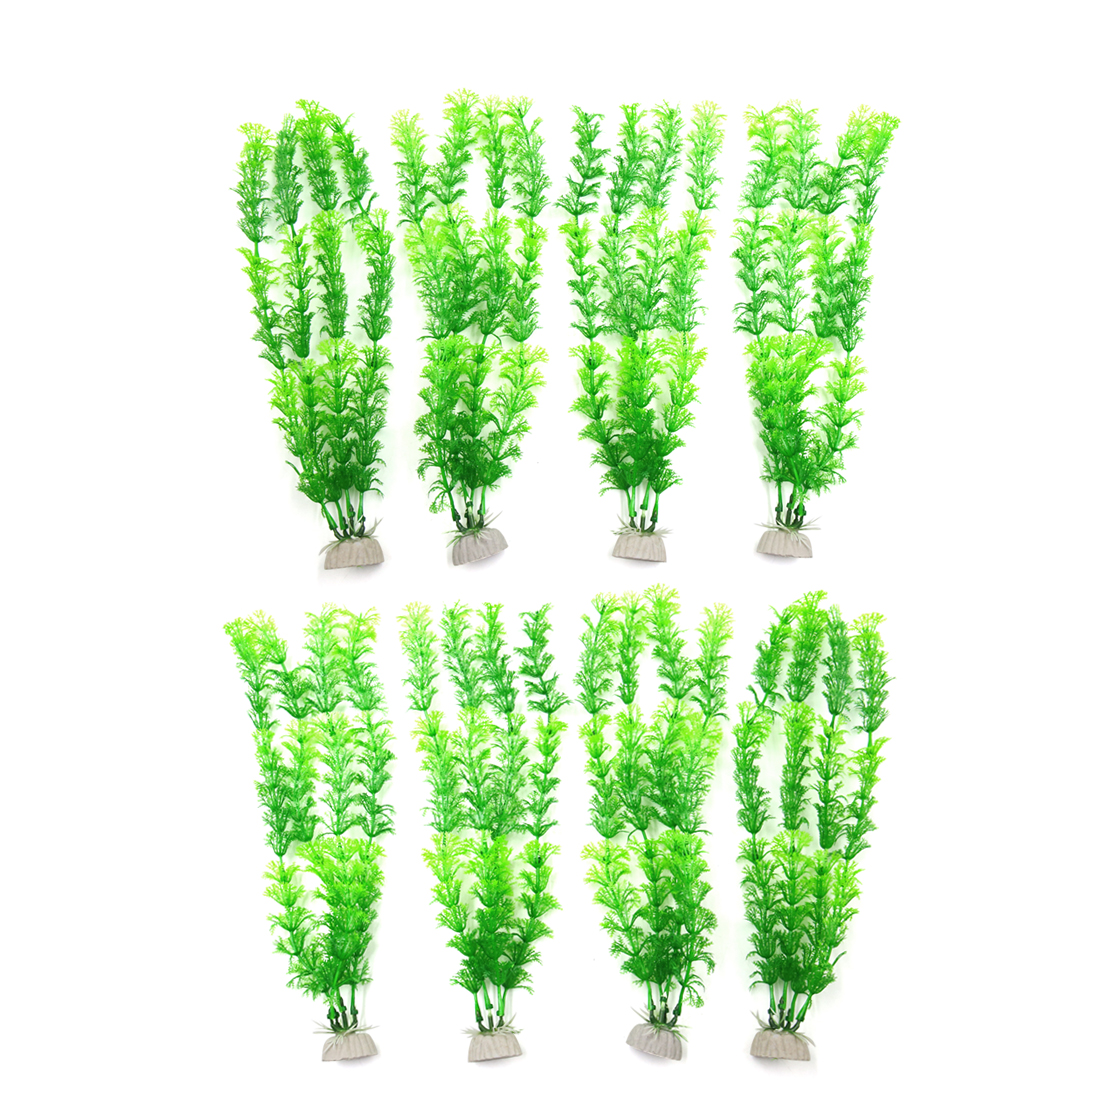 8pcs Green Plastic Aquarium Fish Tank Grass Plant Decor Landscape w Ceramic Base